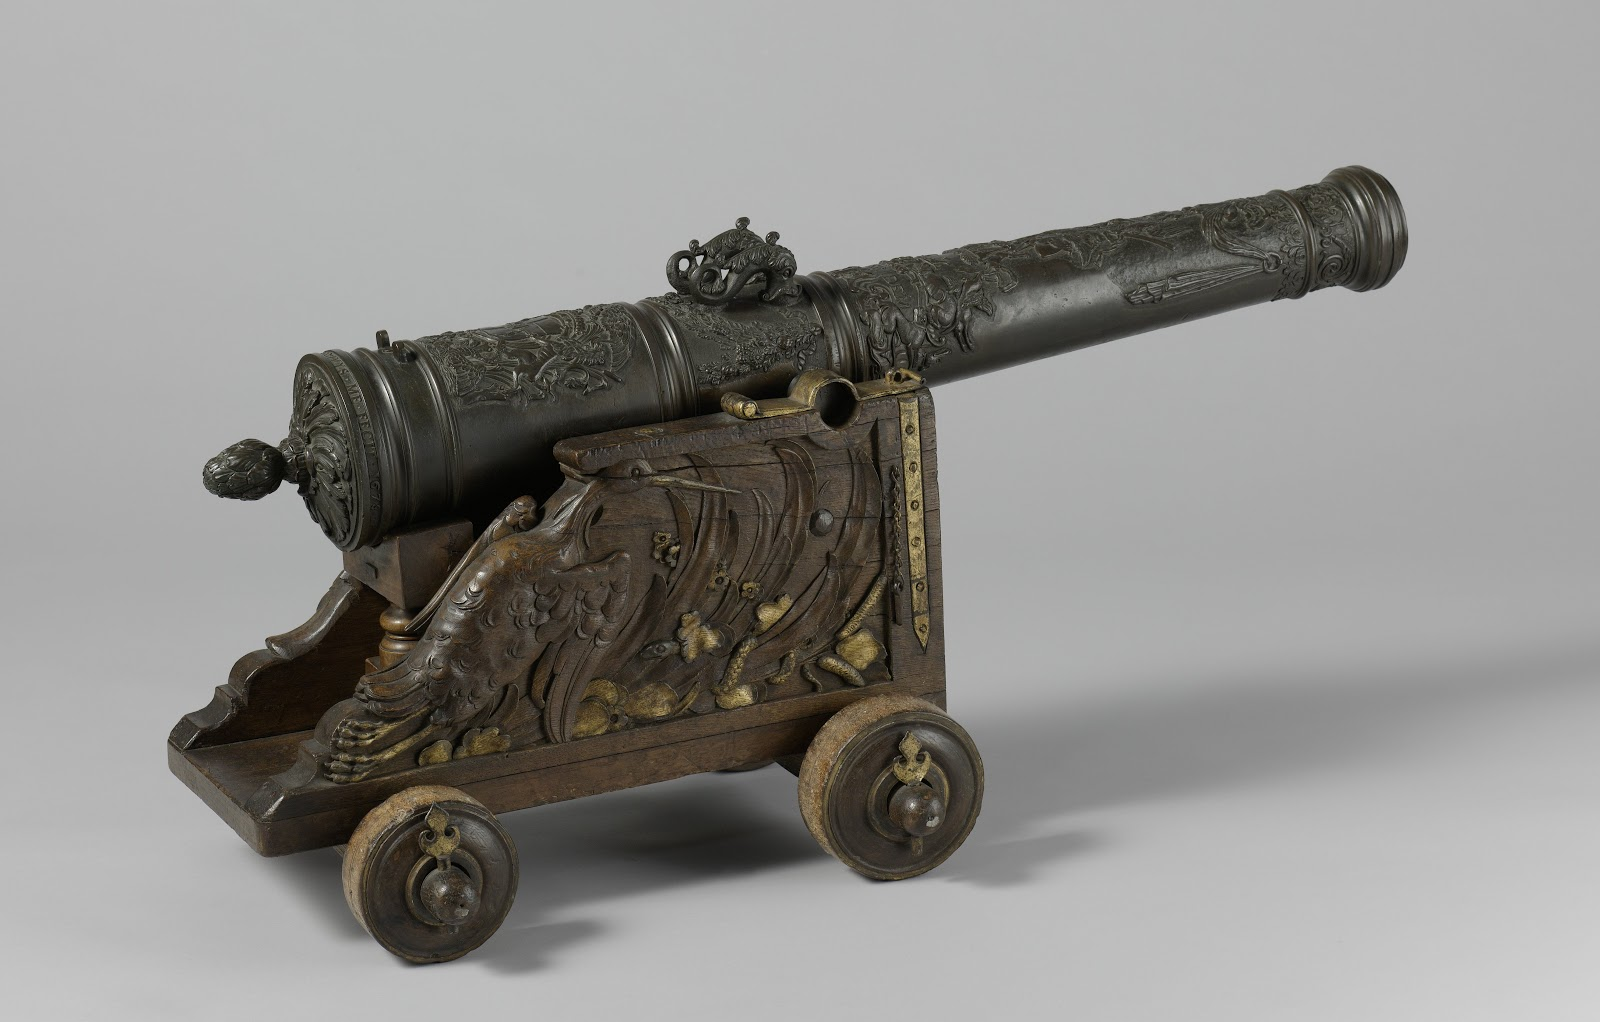 An antique cannon, one of the Rijksmuseum's more violent hidden gems!